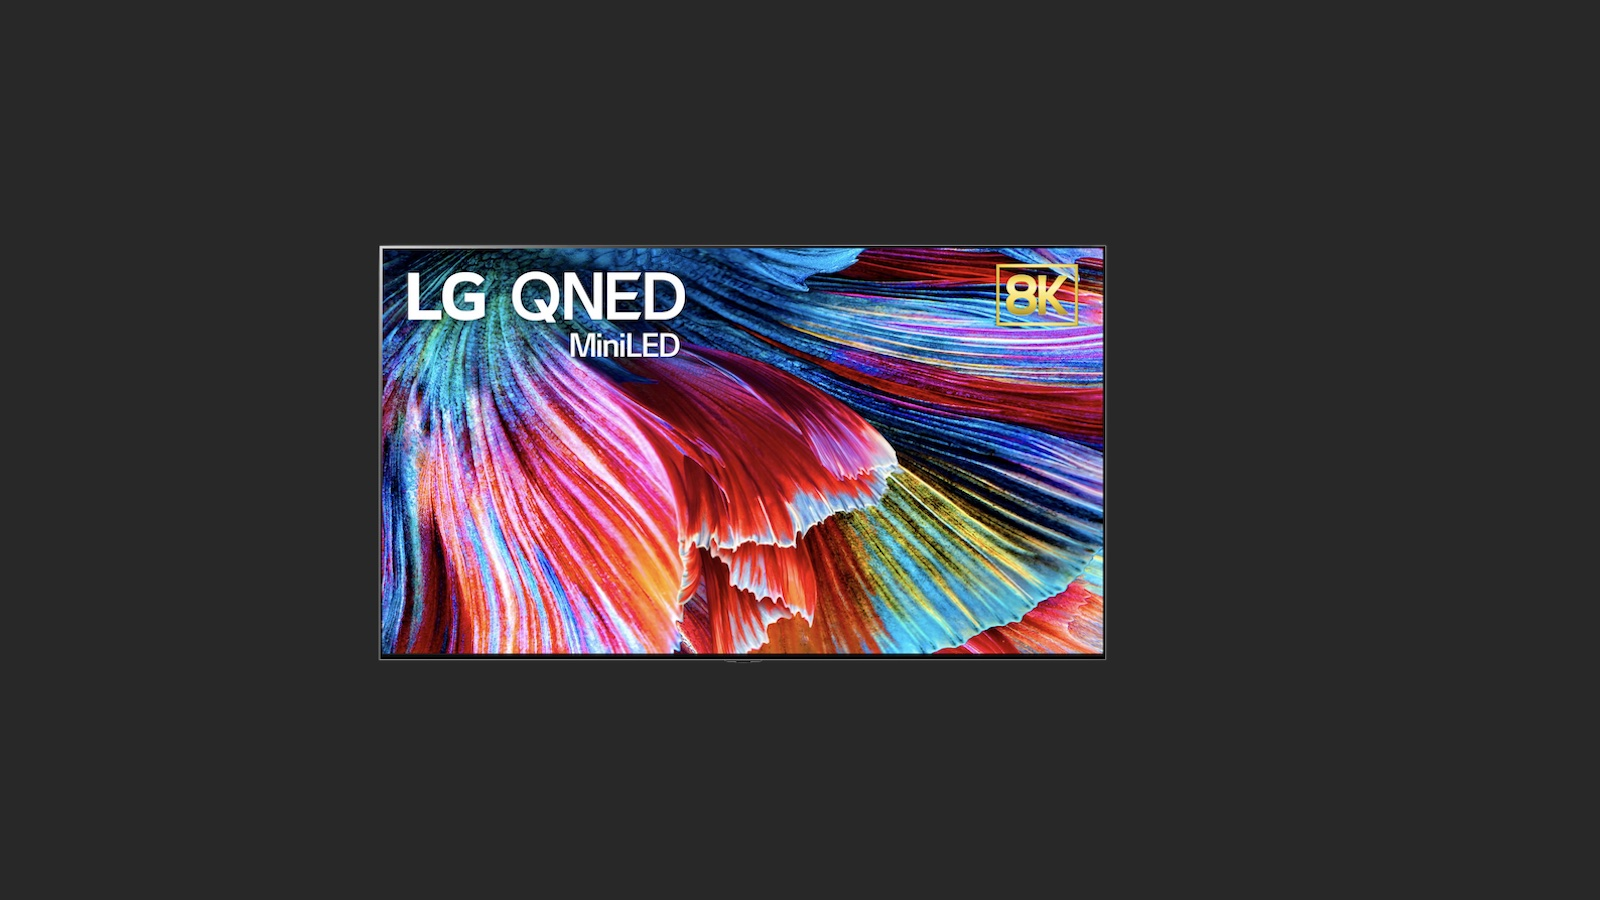 LG QNED Mini LED TV features quantum dot and NanoCell technologies